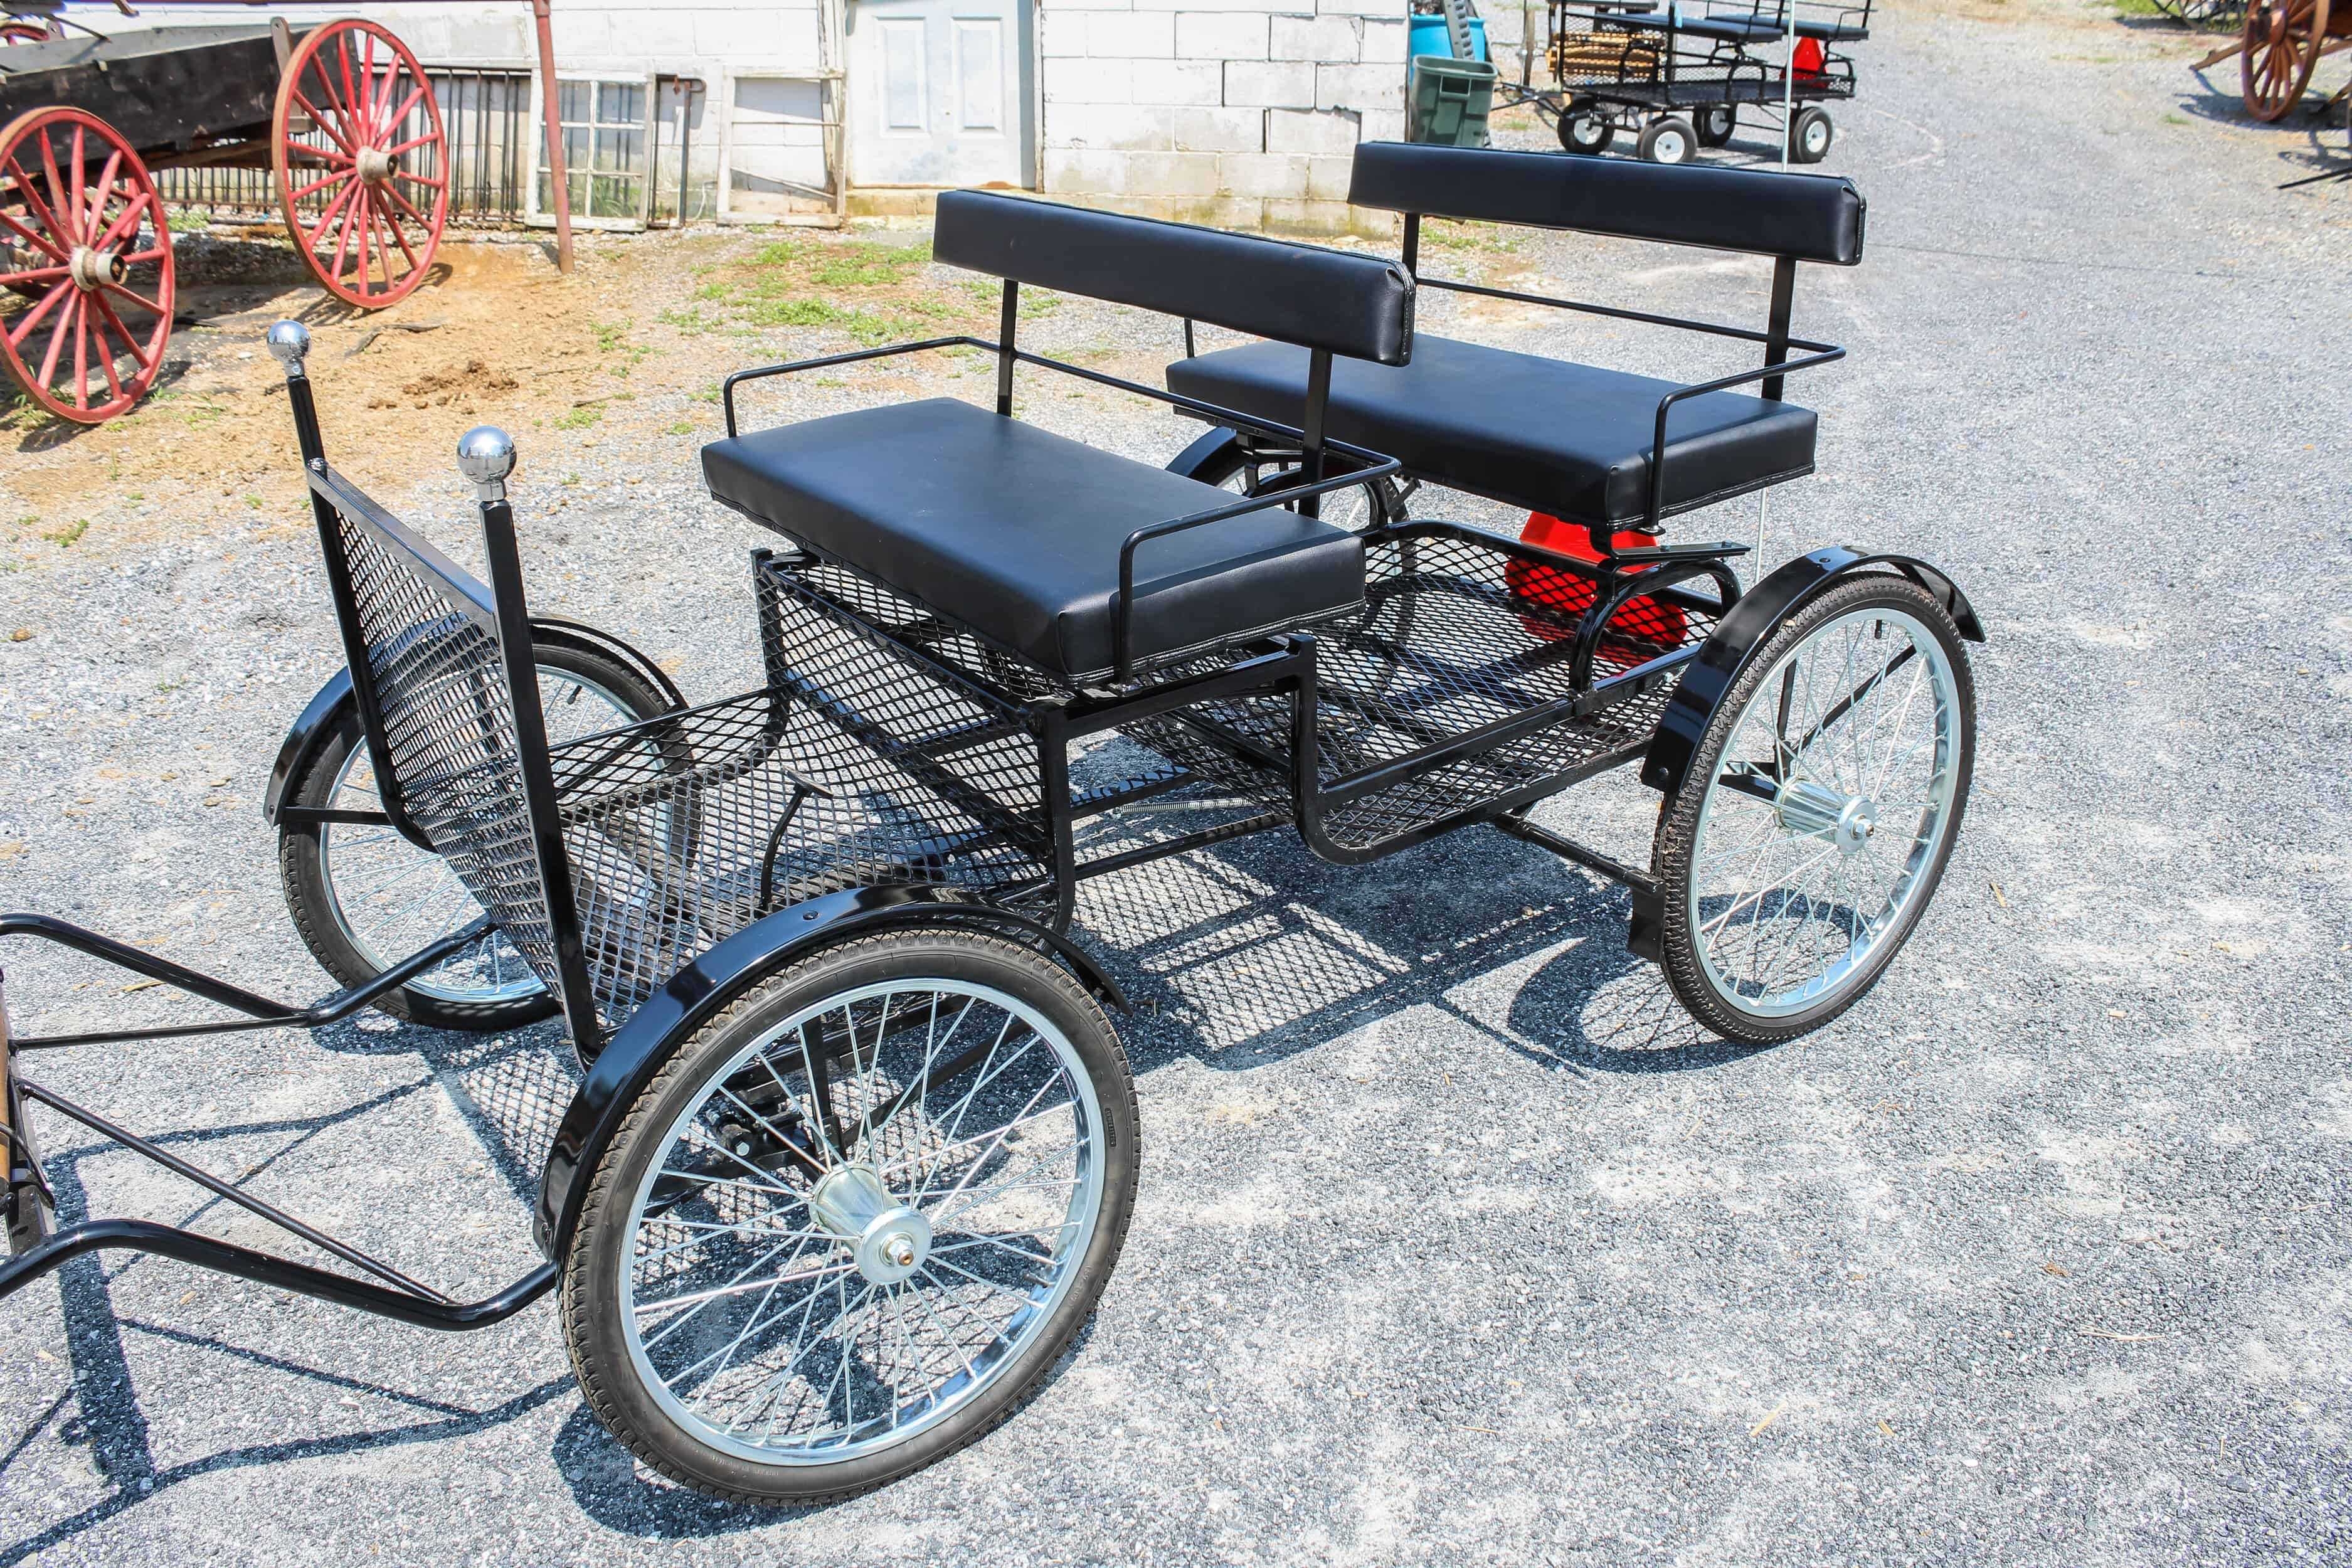 "#539 New Pony Size Cruiser- 2 Seats- Brakes- 24"" Front Wheels- 26"" Rear Wheels- Cut Under Shaft 65"" Long $1450.00 A"